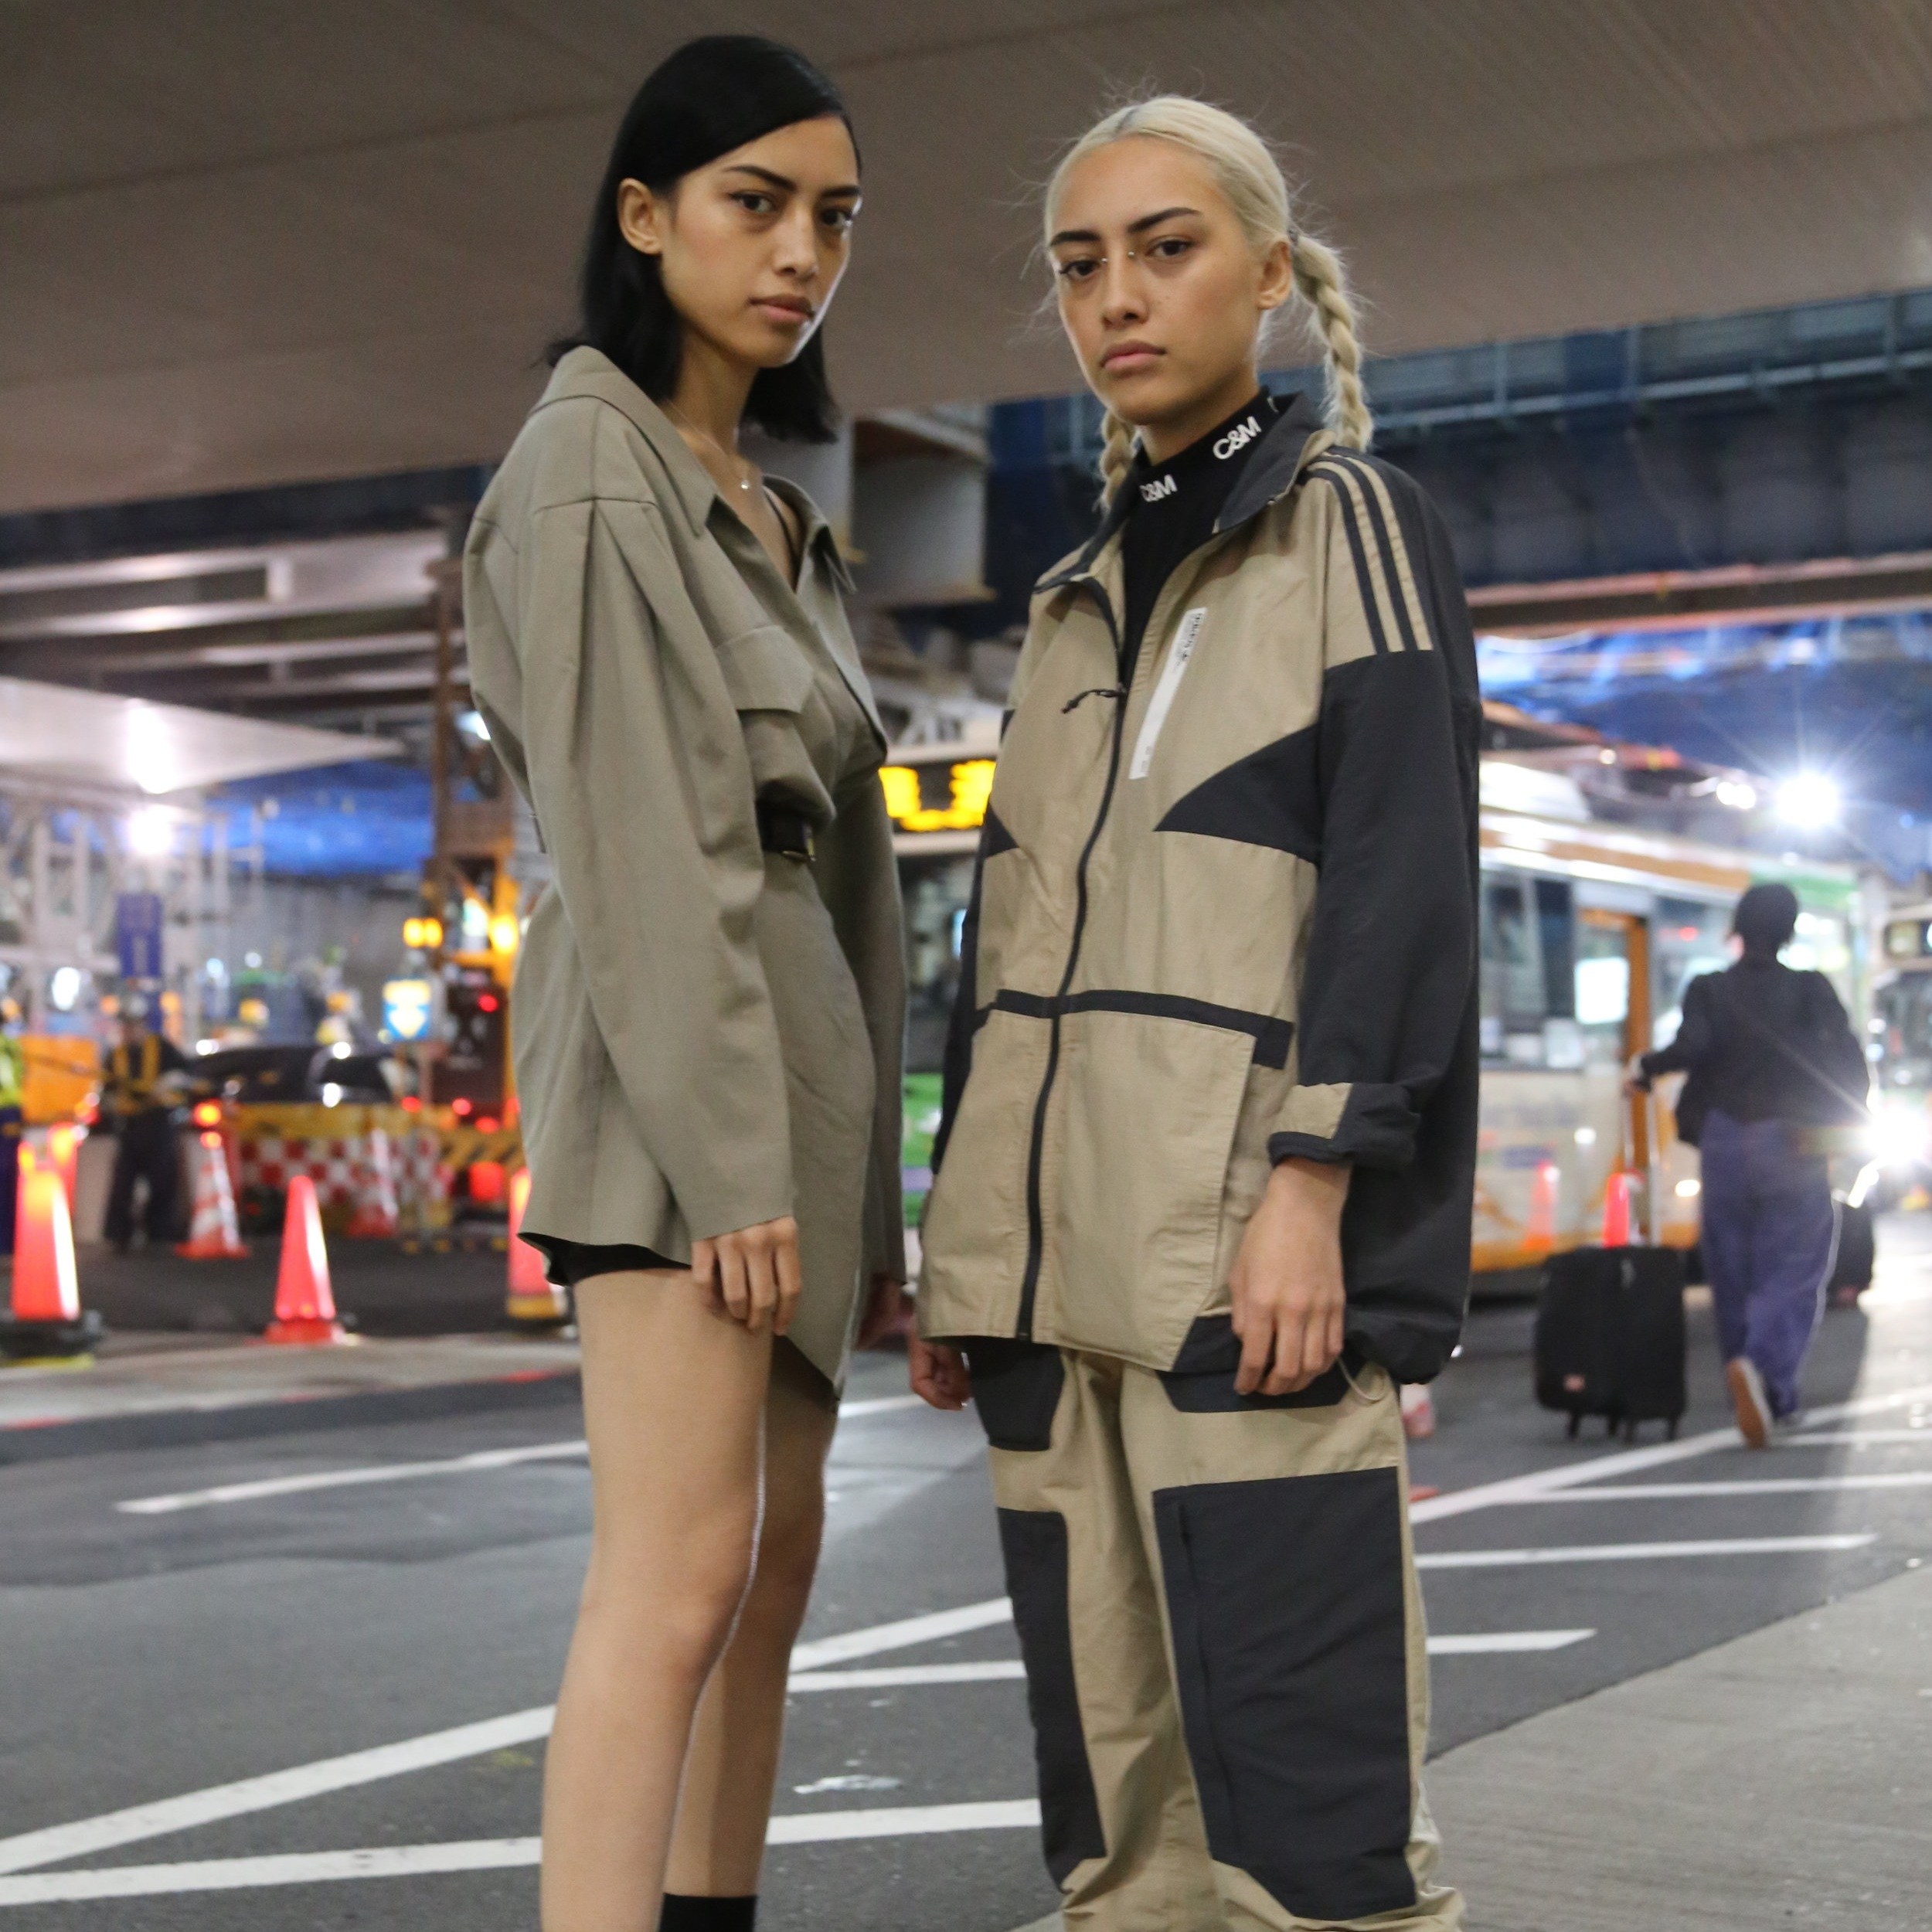 Rain and China  Rain  @lordsaiko  & China  @djfinechina    The Katanyangi Twins   Dj's on the Auckland Scene, Influencers and Models.  The twins have a combined social profile reaching over 50k in following over three platforms.  Their fans love their style and influence and they are growing daily.